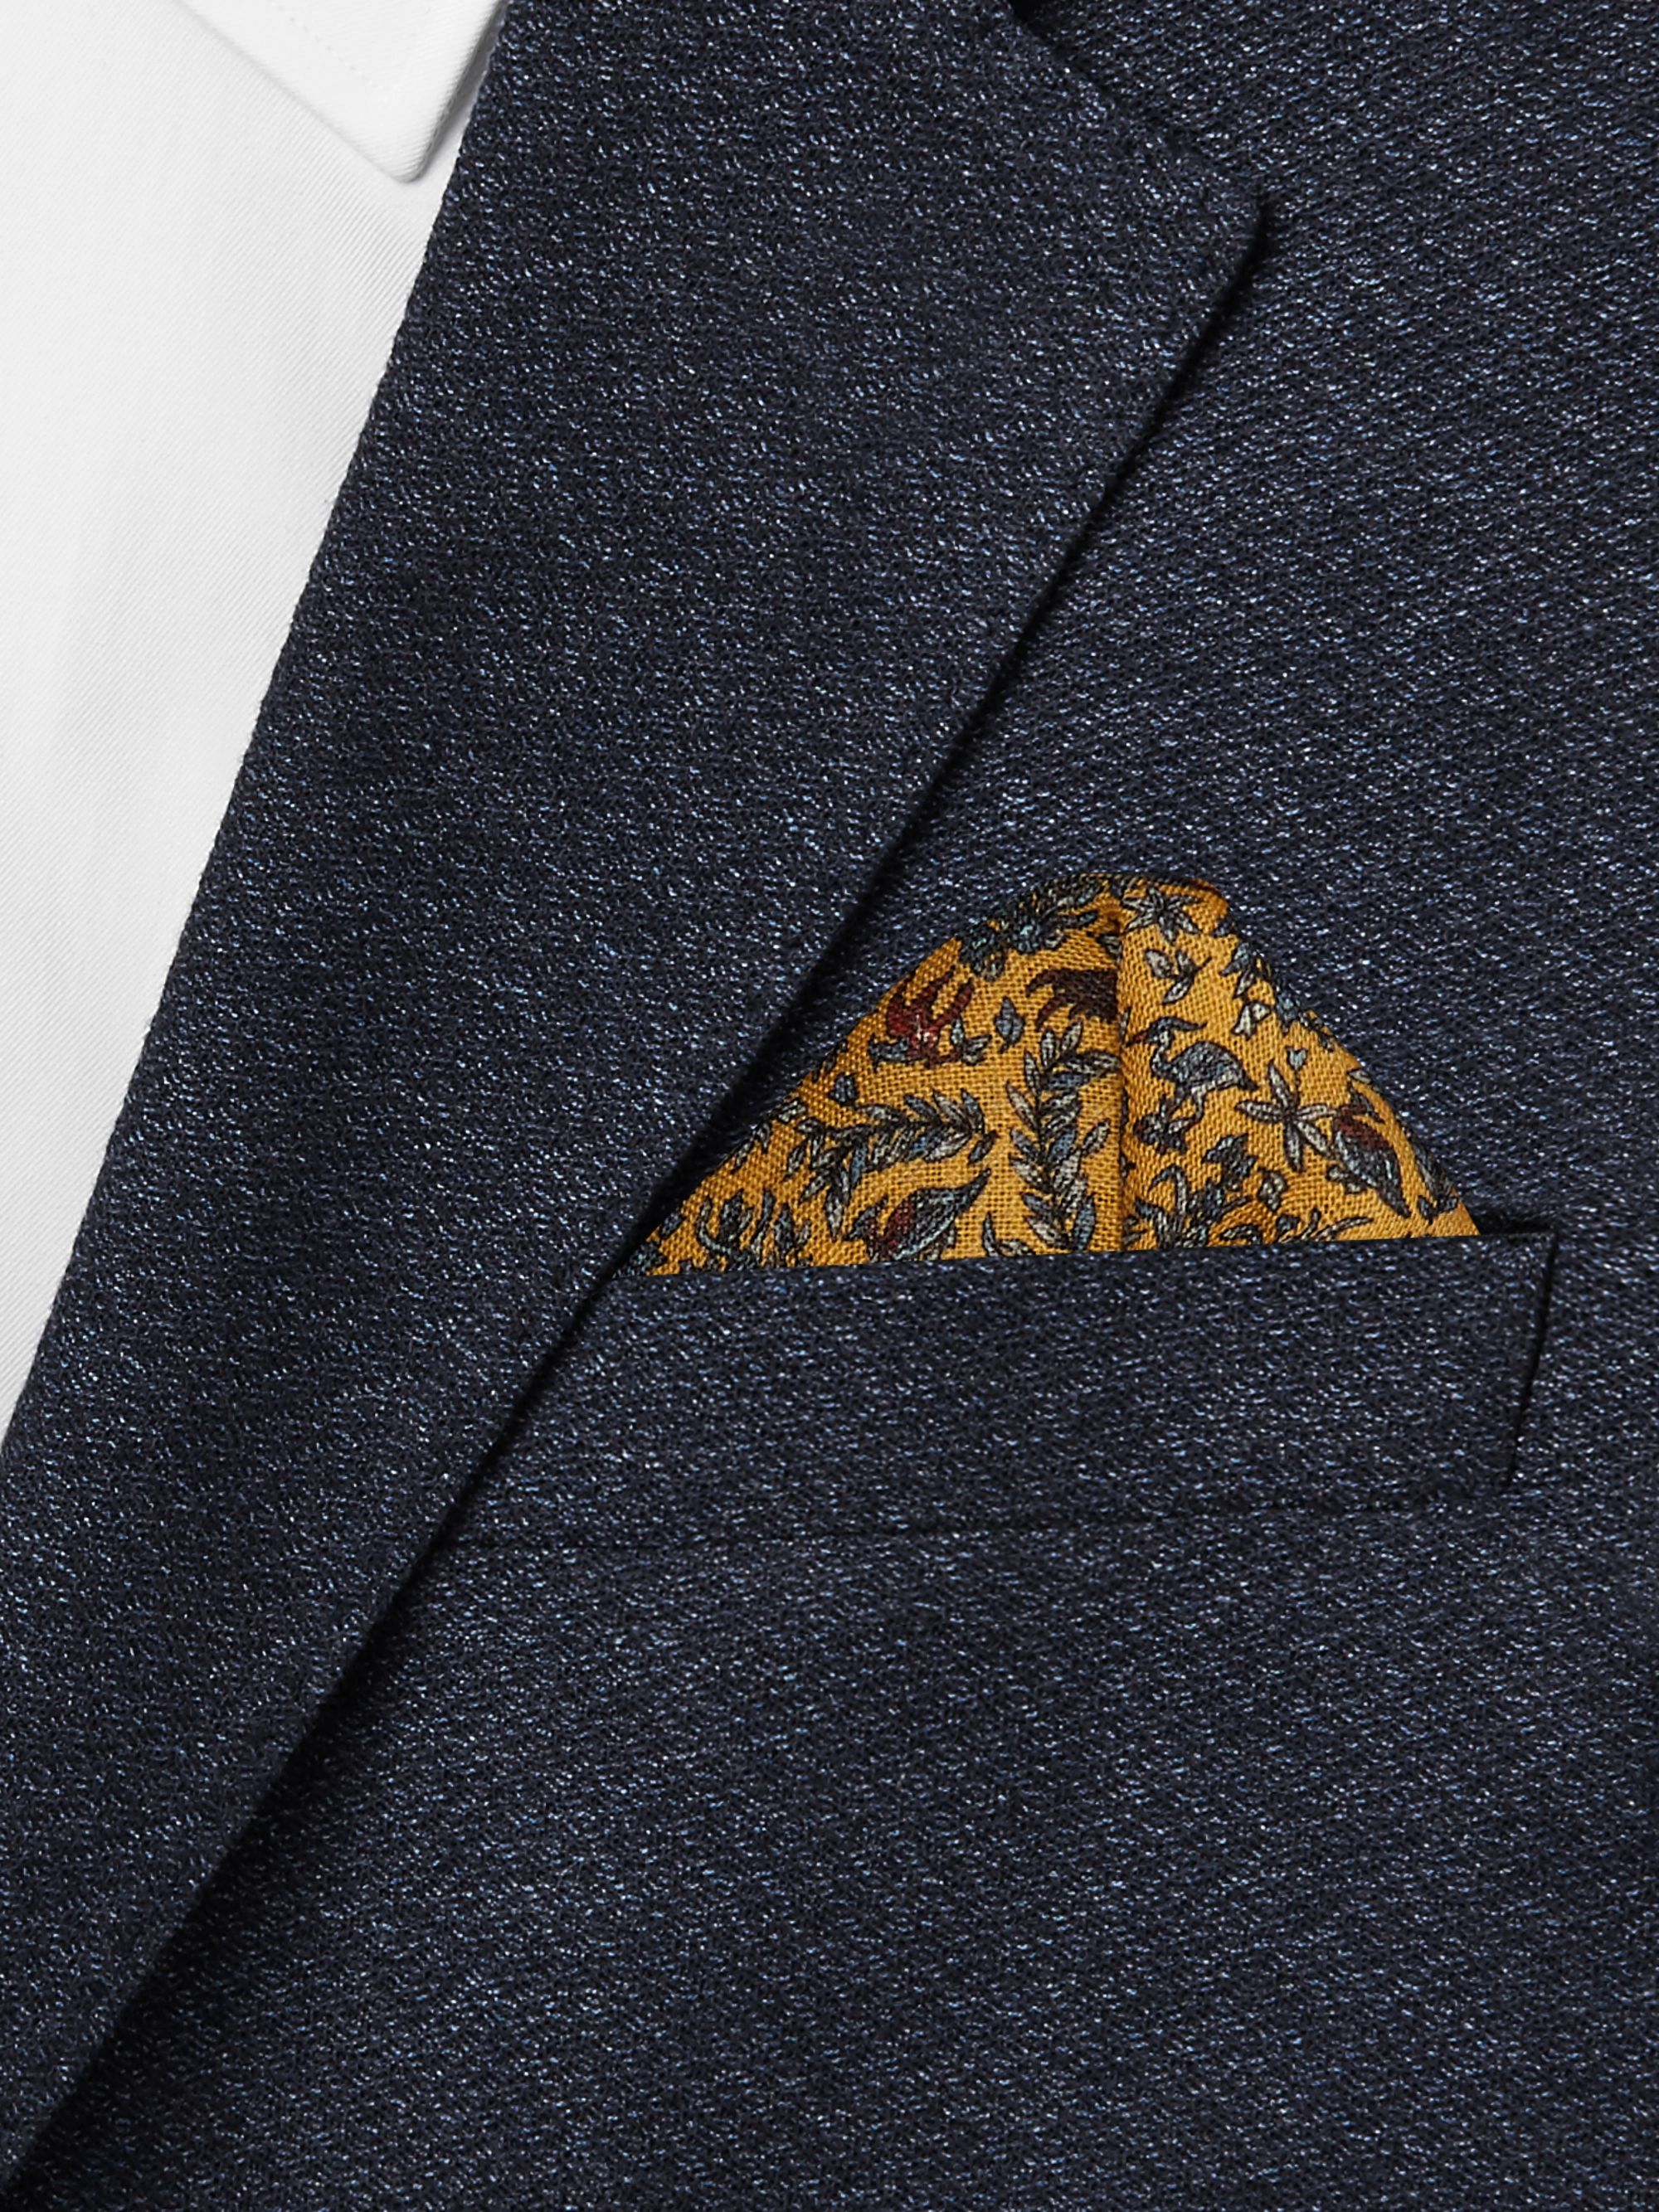 Aimé Leon Dore + Drake's Printed Wool and Silk-Blend Pocket Square